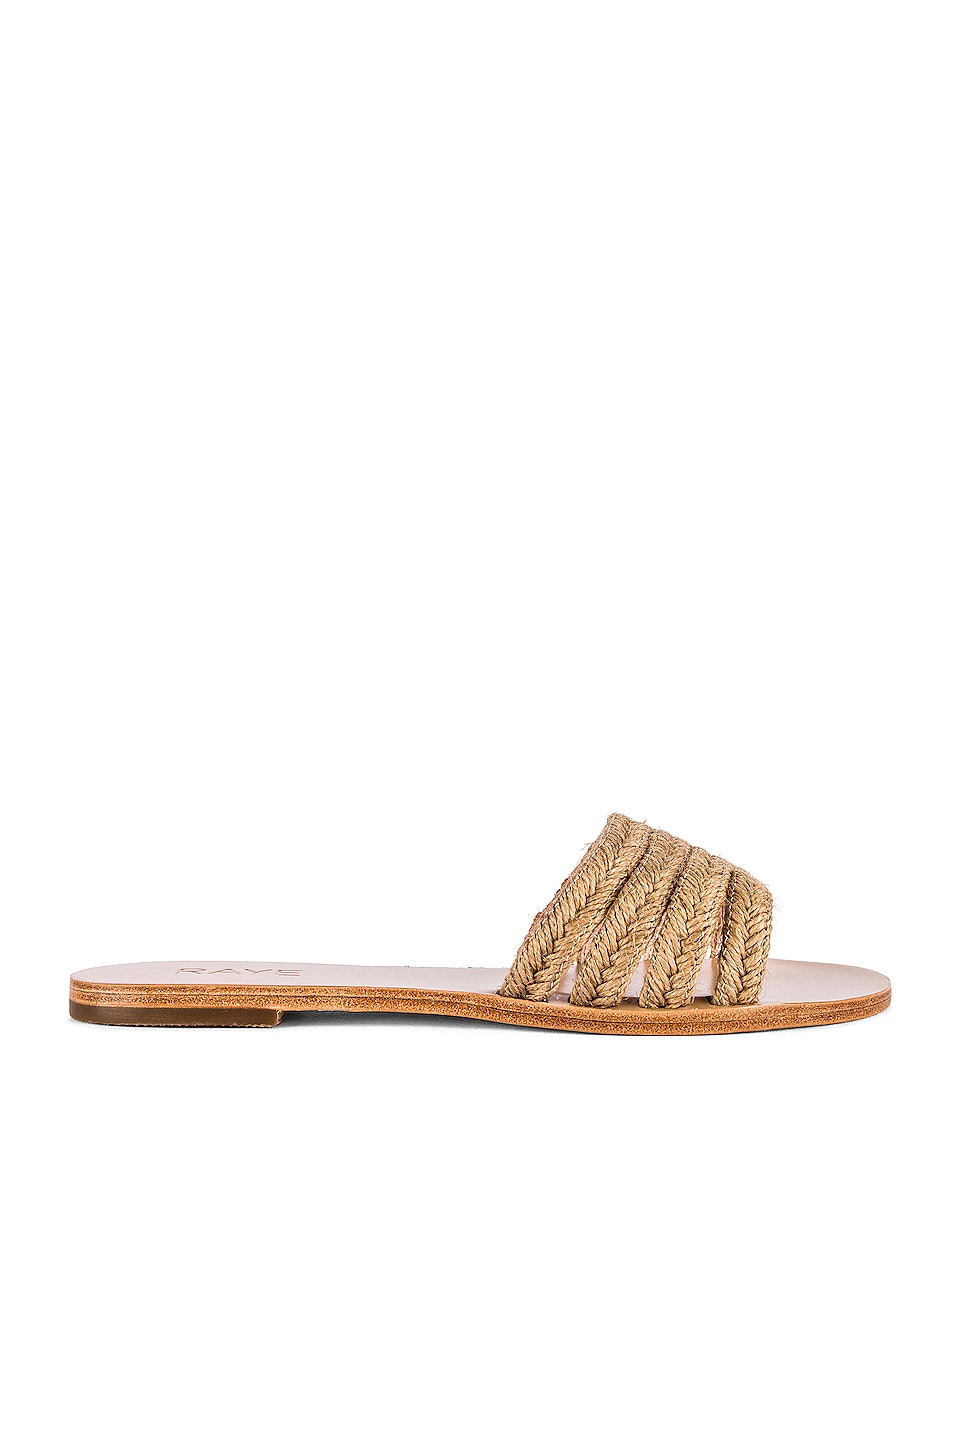 RAYE Twist Sandal in Natural